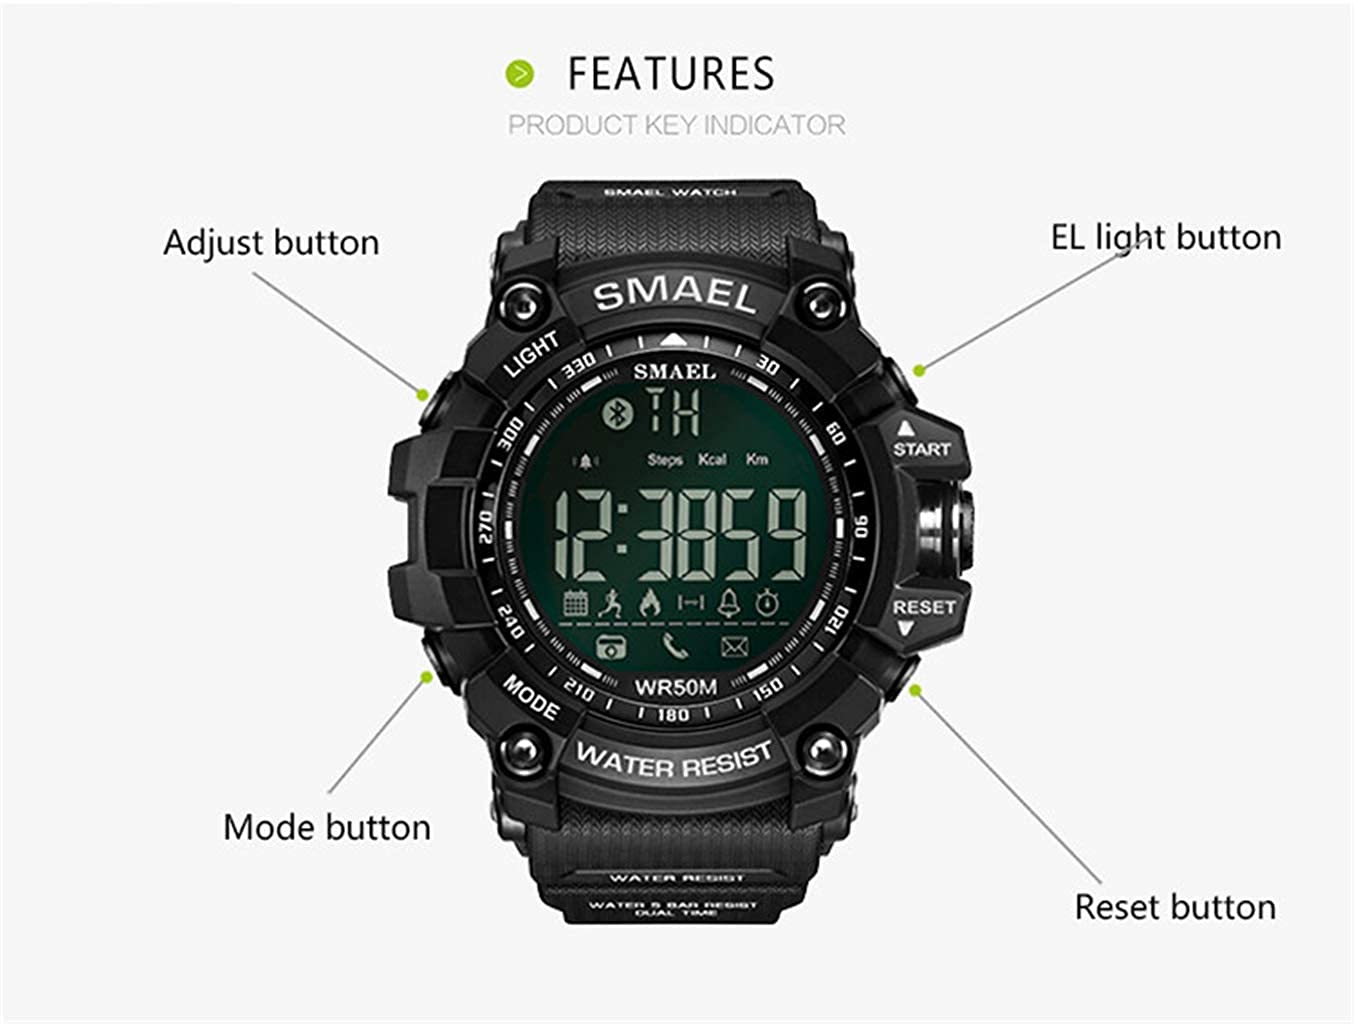 Amazon.com: SMAEL Digital Watch Sports Watch Military Watch with Waterproof Function and Alarm Clock,for Men,by WoCoo(Black): Clothing